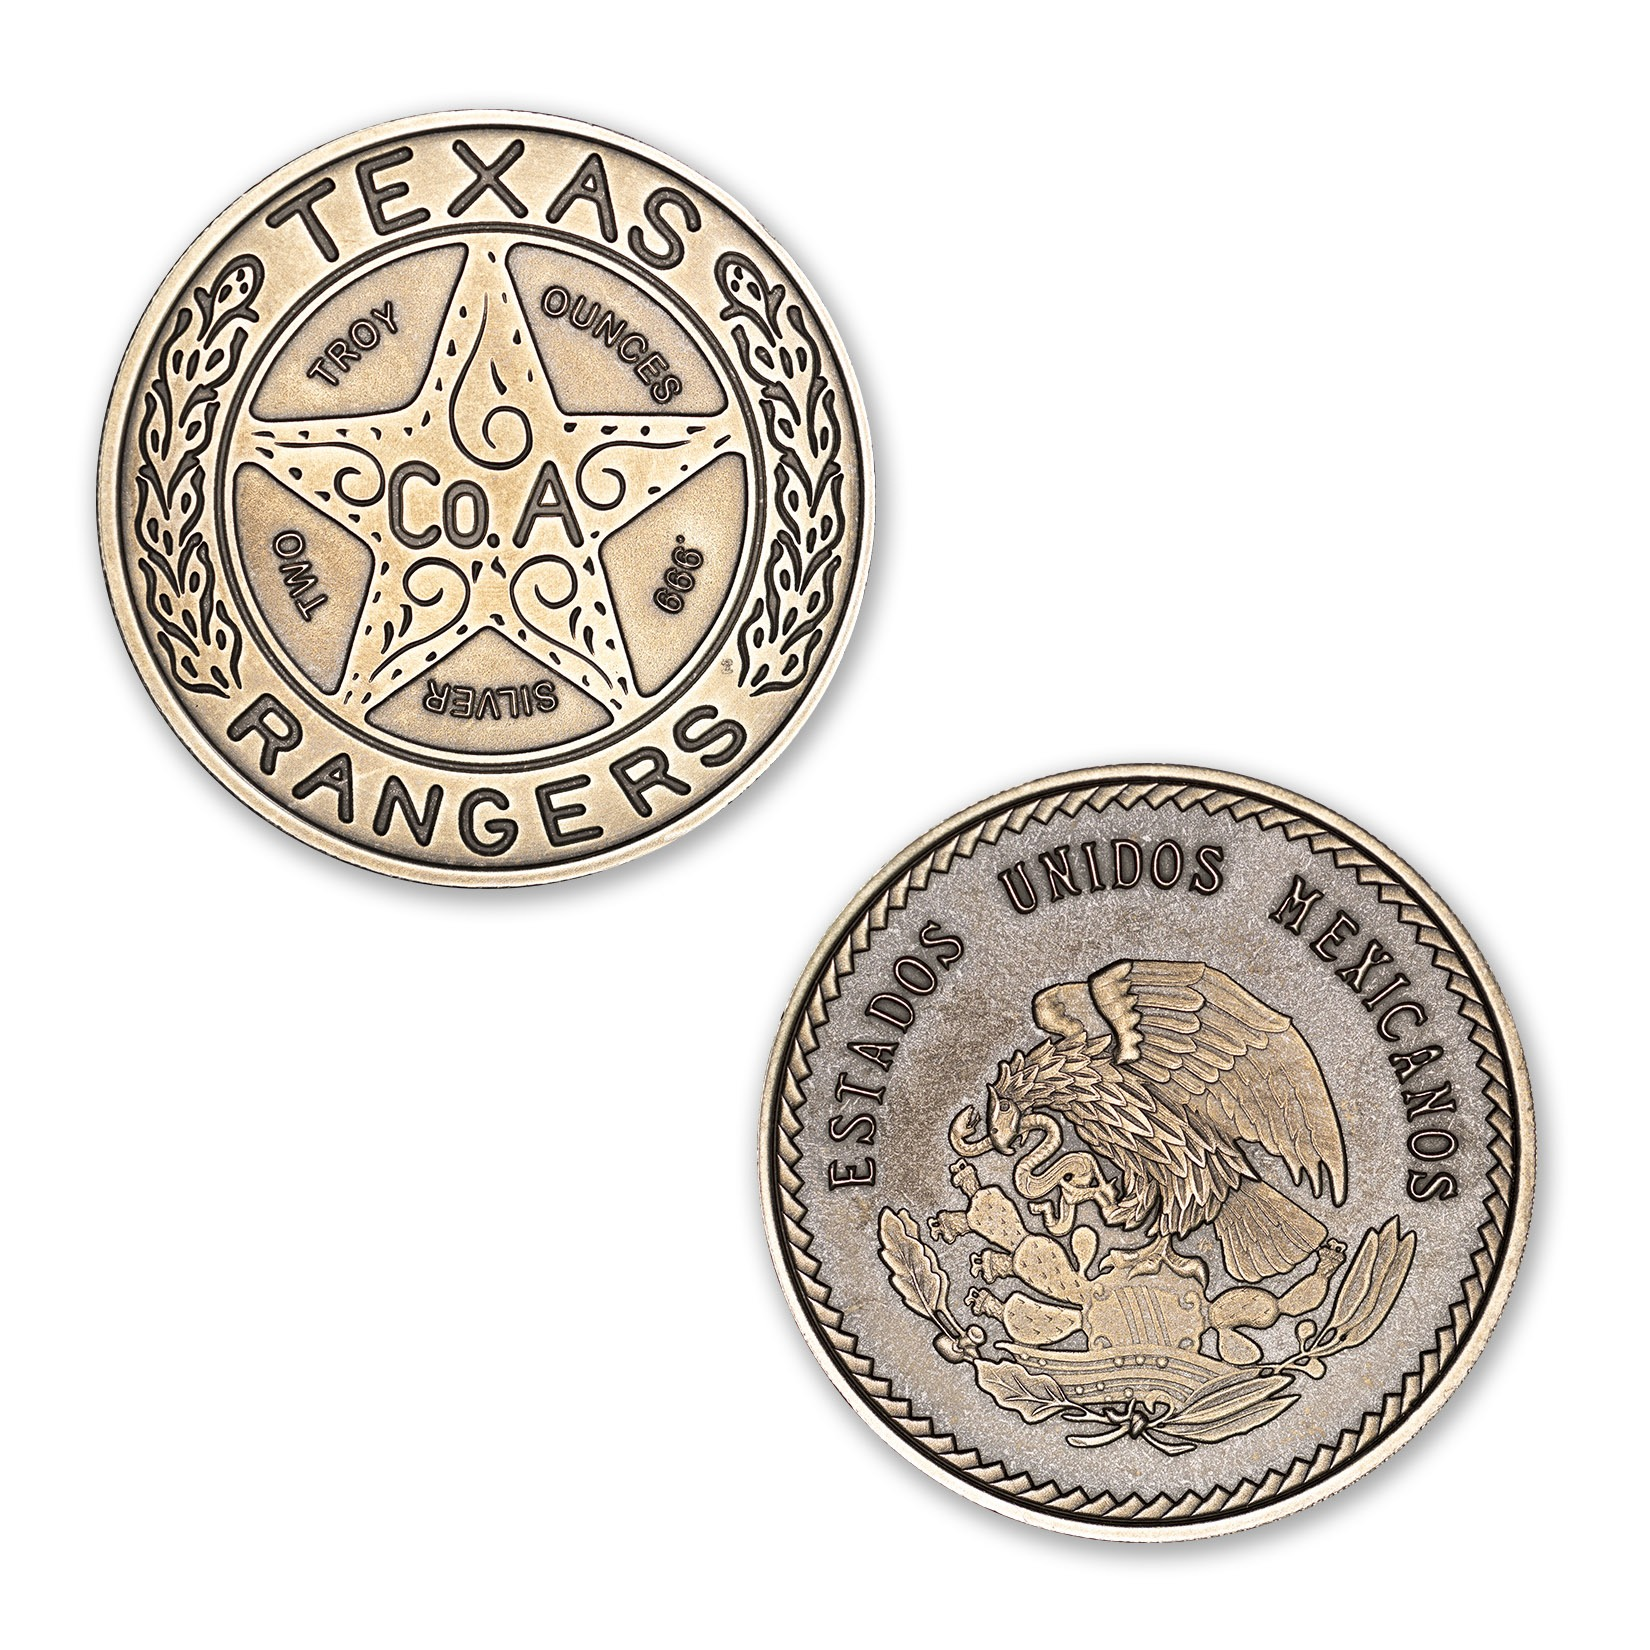 "The Texas Ranger ""Wagon-Wheel"" Badge Tribute - 2 ozt 39mm .999 Fine Silver Art Medal with ANTIQUE FINISH (6mm Thick)"